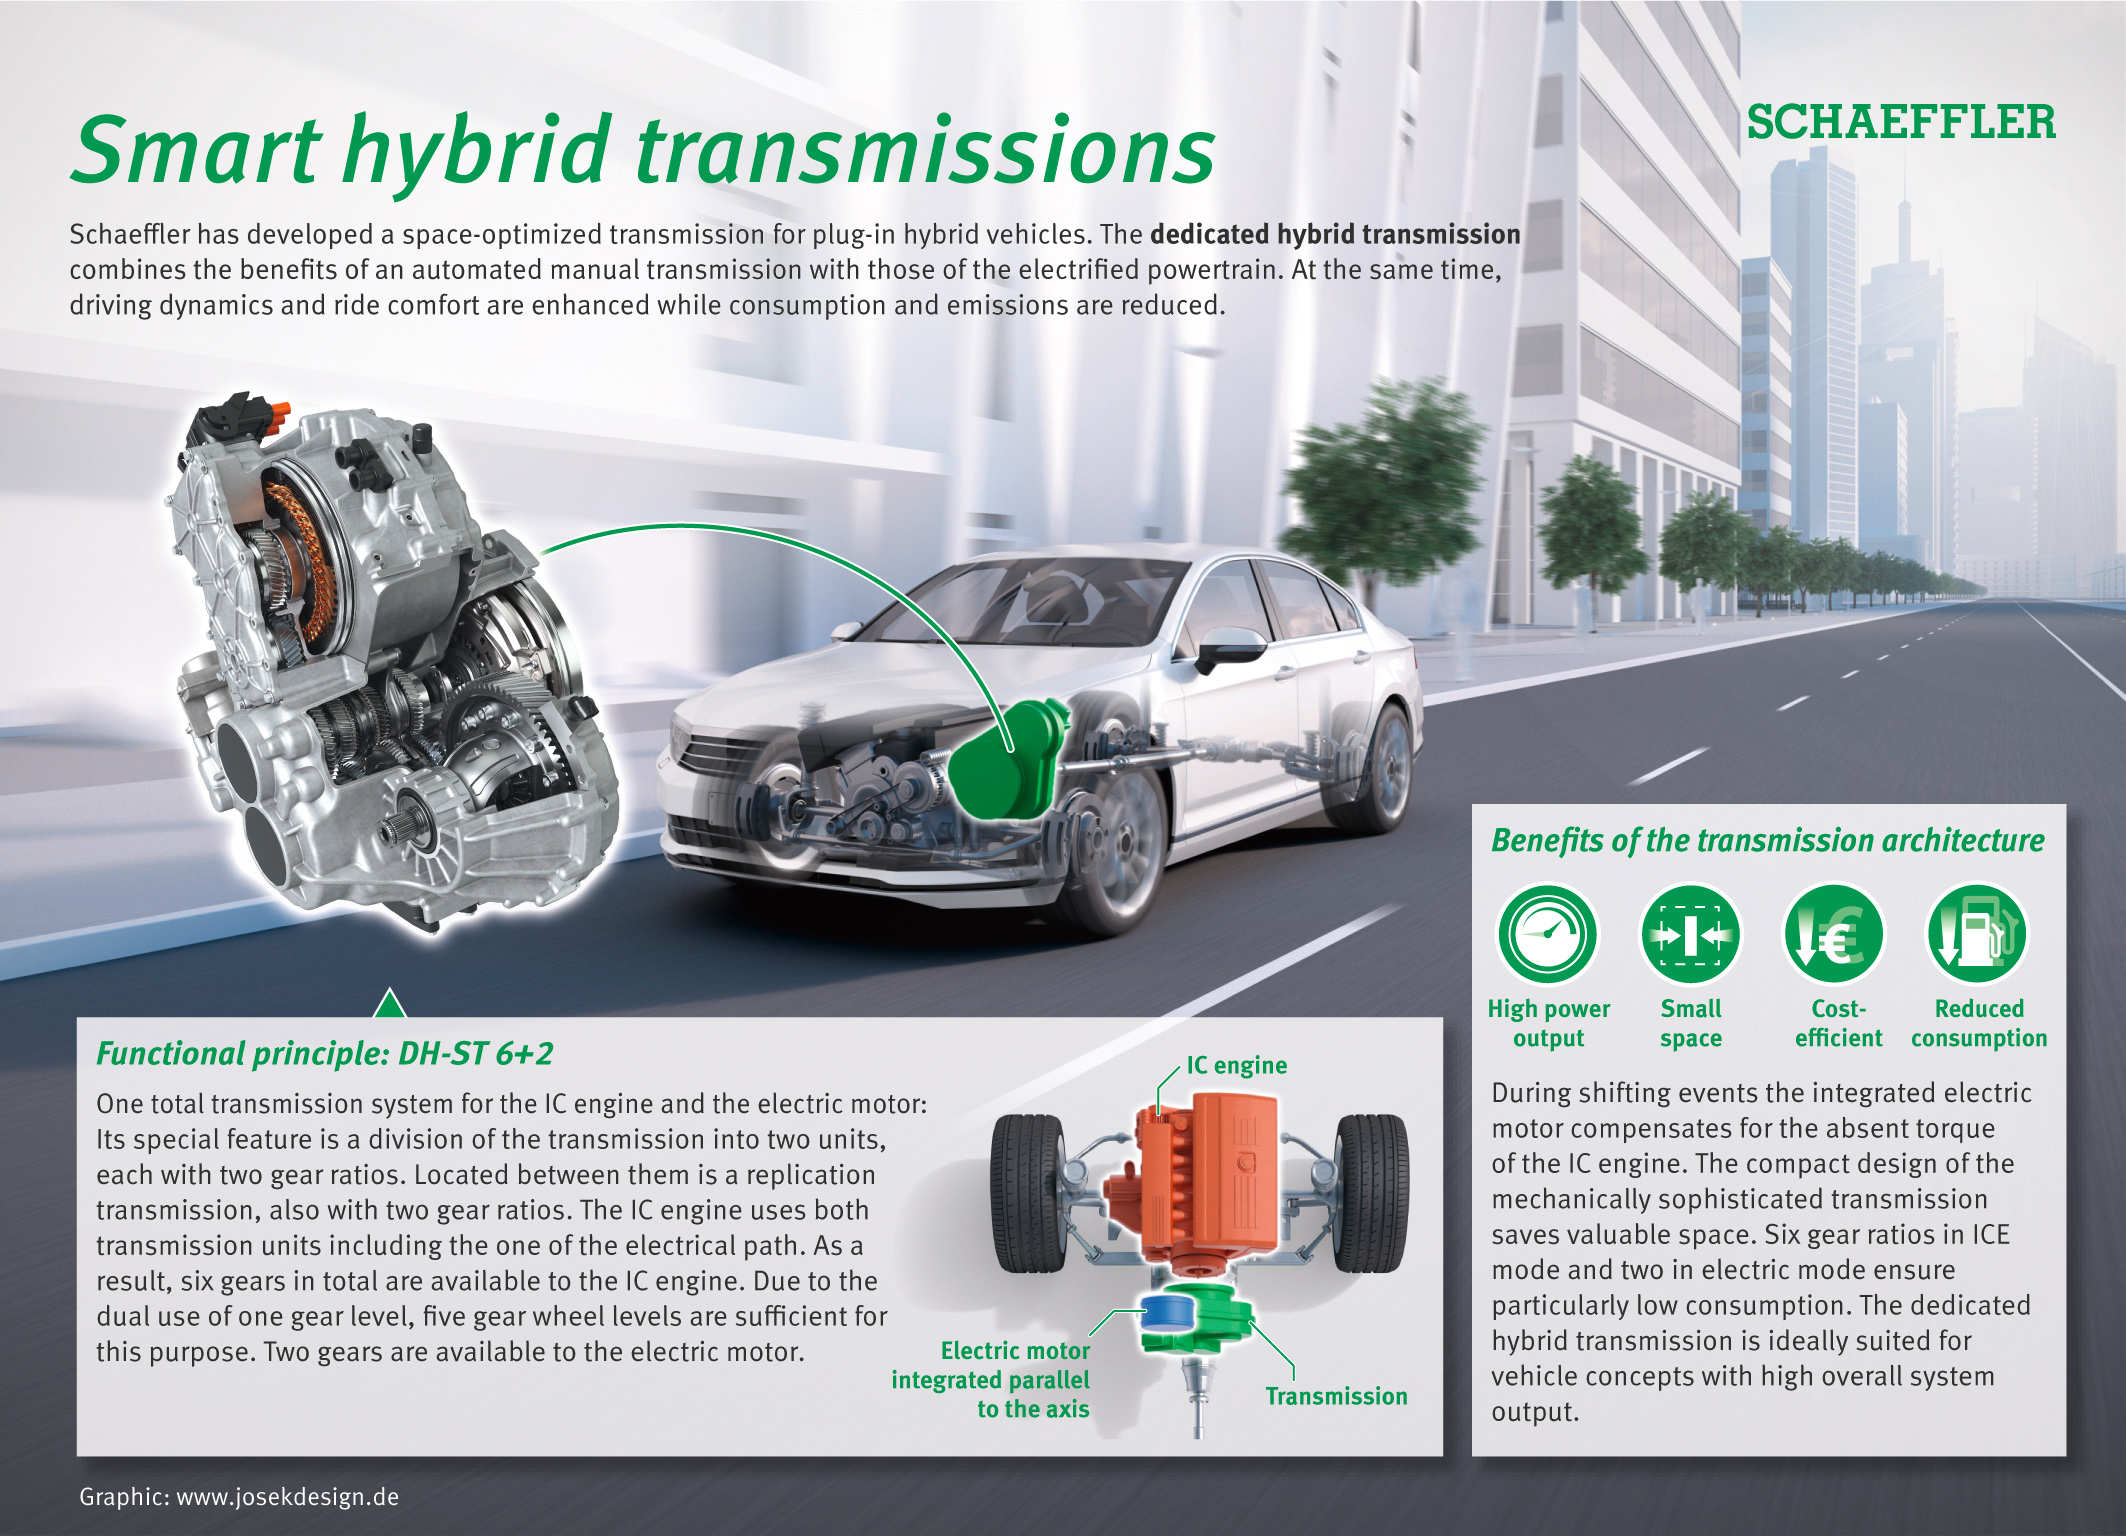 Schaeffler Group | News & Media | Press Releases | New Development Platform  for Electric and Hybrid Drives: How Schaeffler is Accelerating Electric  Mobility